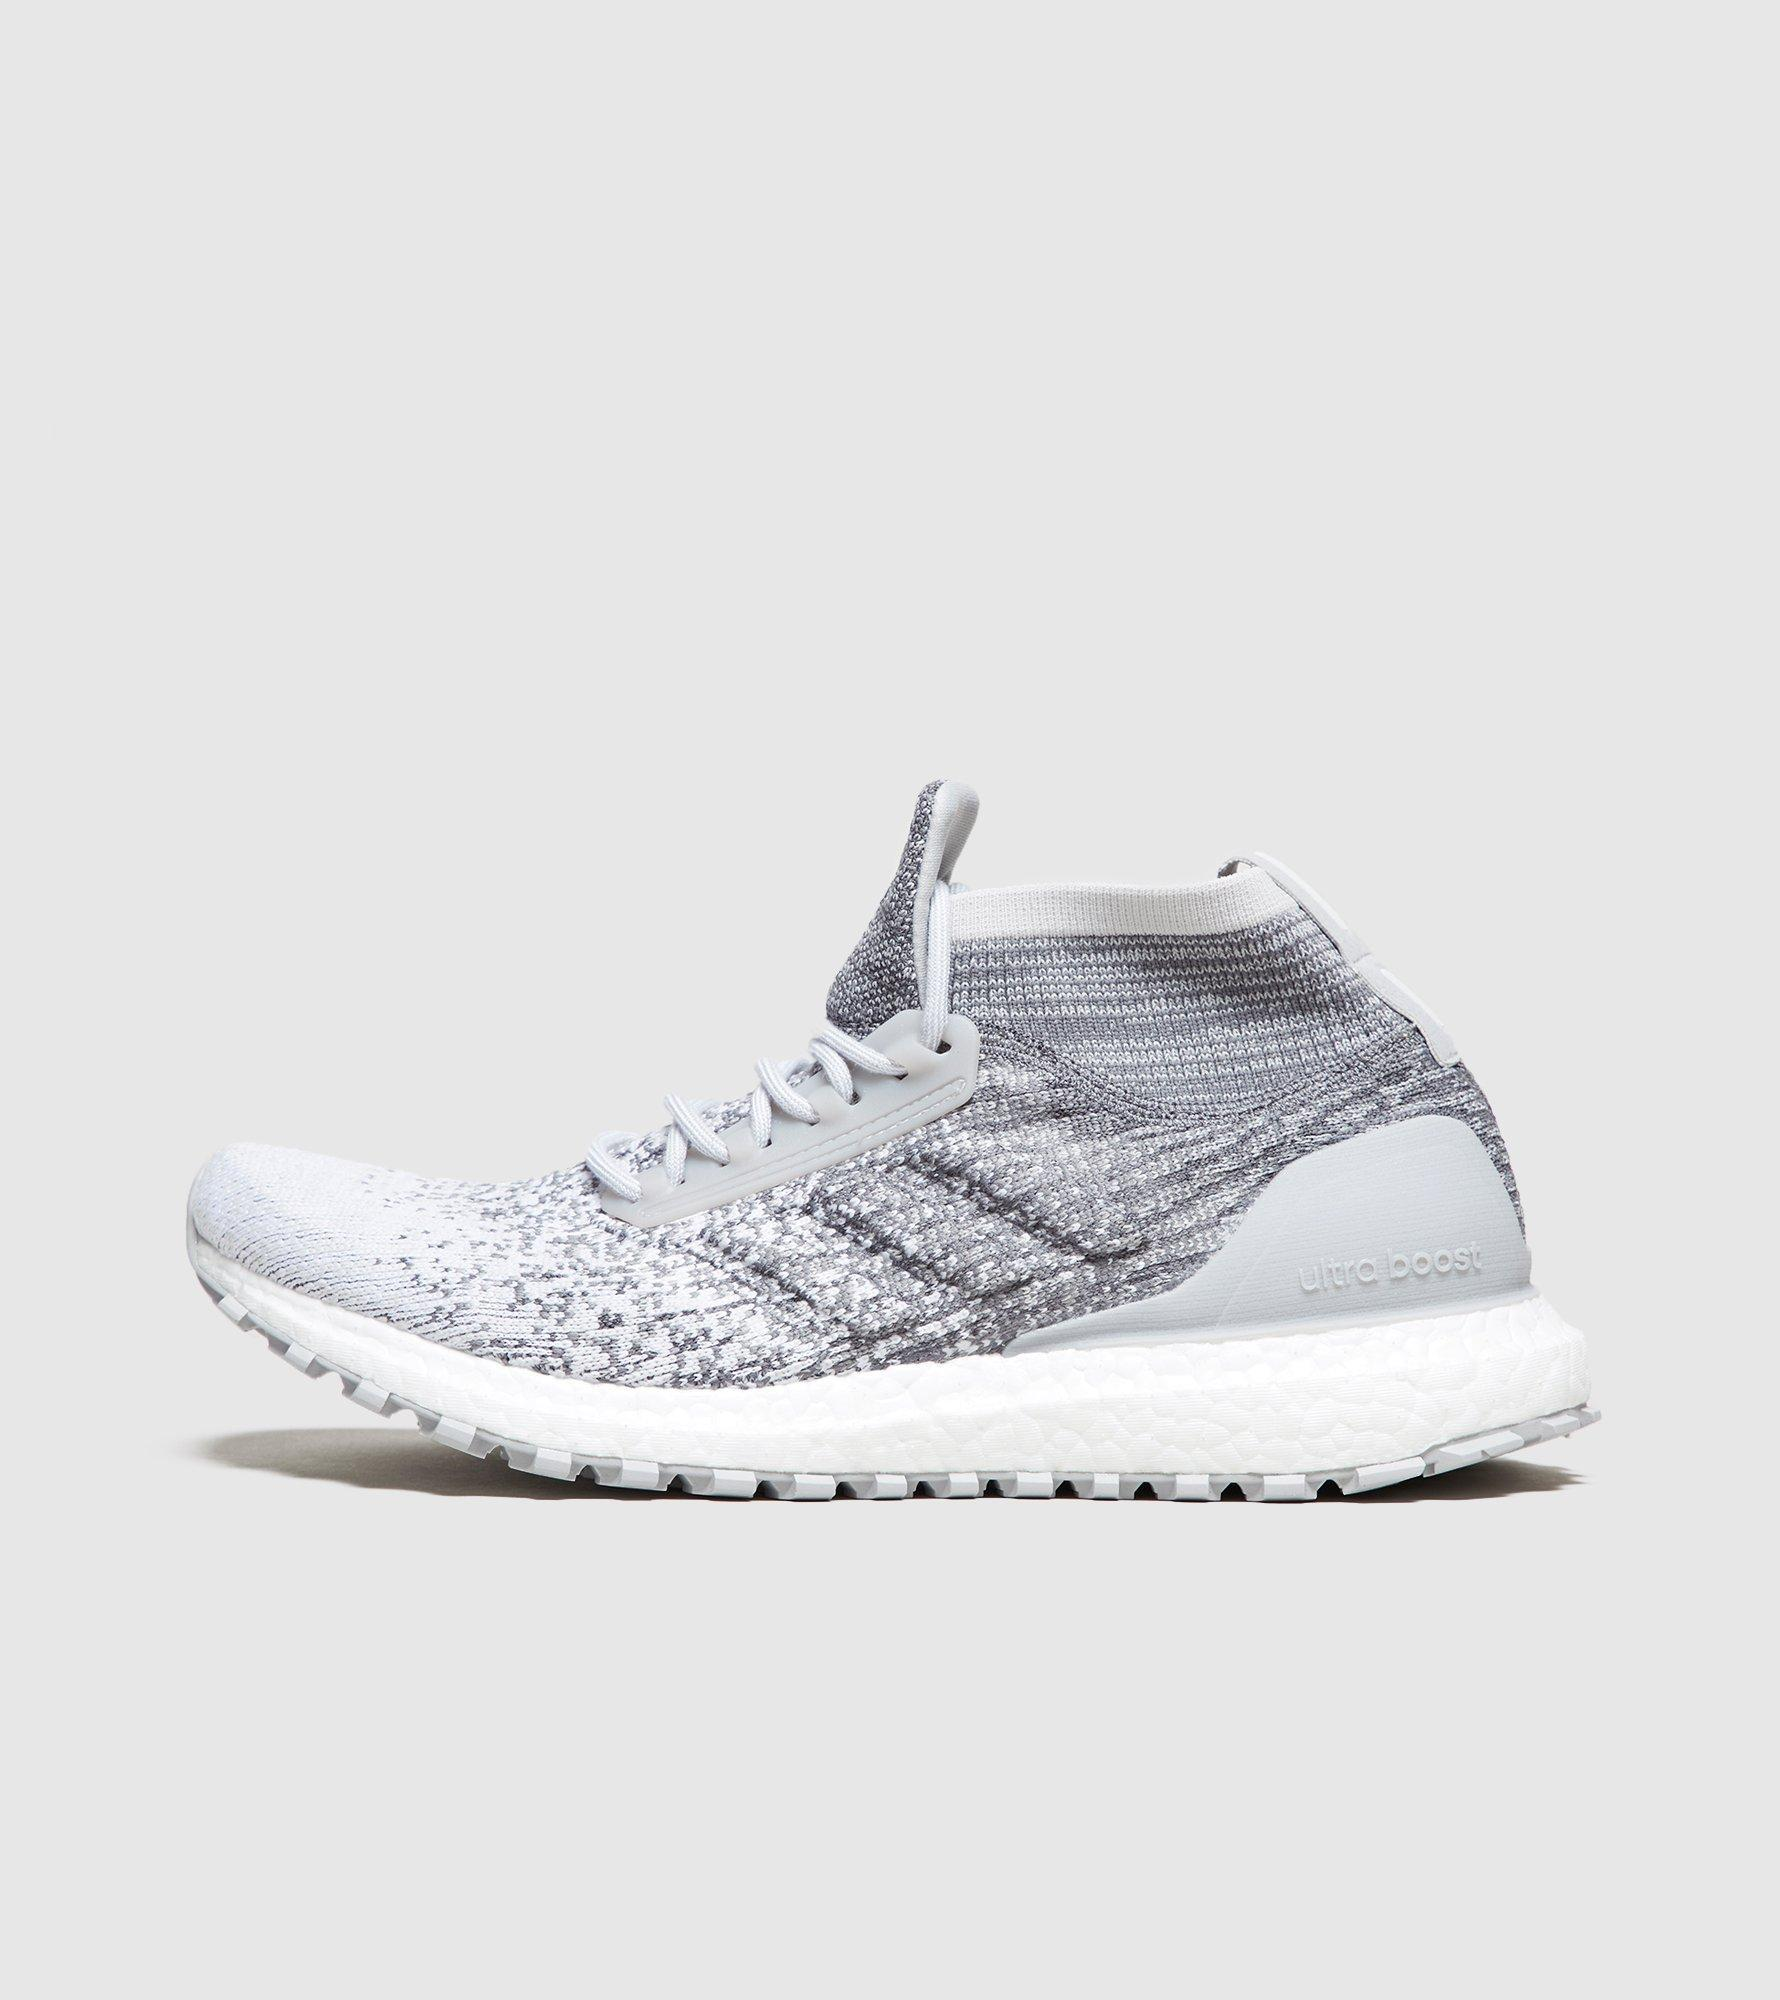 6cbdf6fa215fd where to buy adidas ultra boost 4.0 cookies and cream release cop these  kicks 25370 7e46b  aliexpress lyst adidas x reigning champ ultra boost atr  in white ...